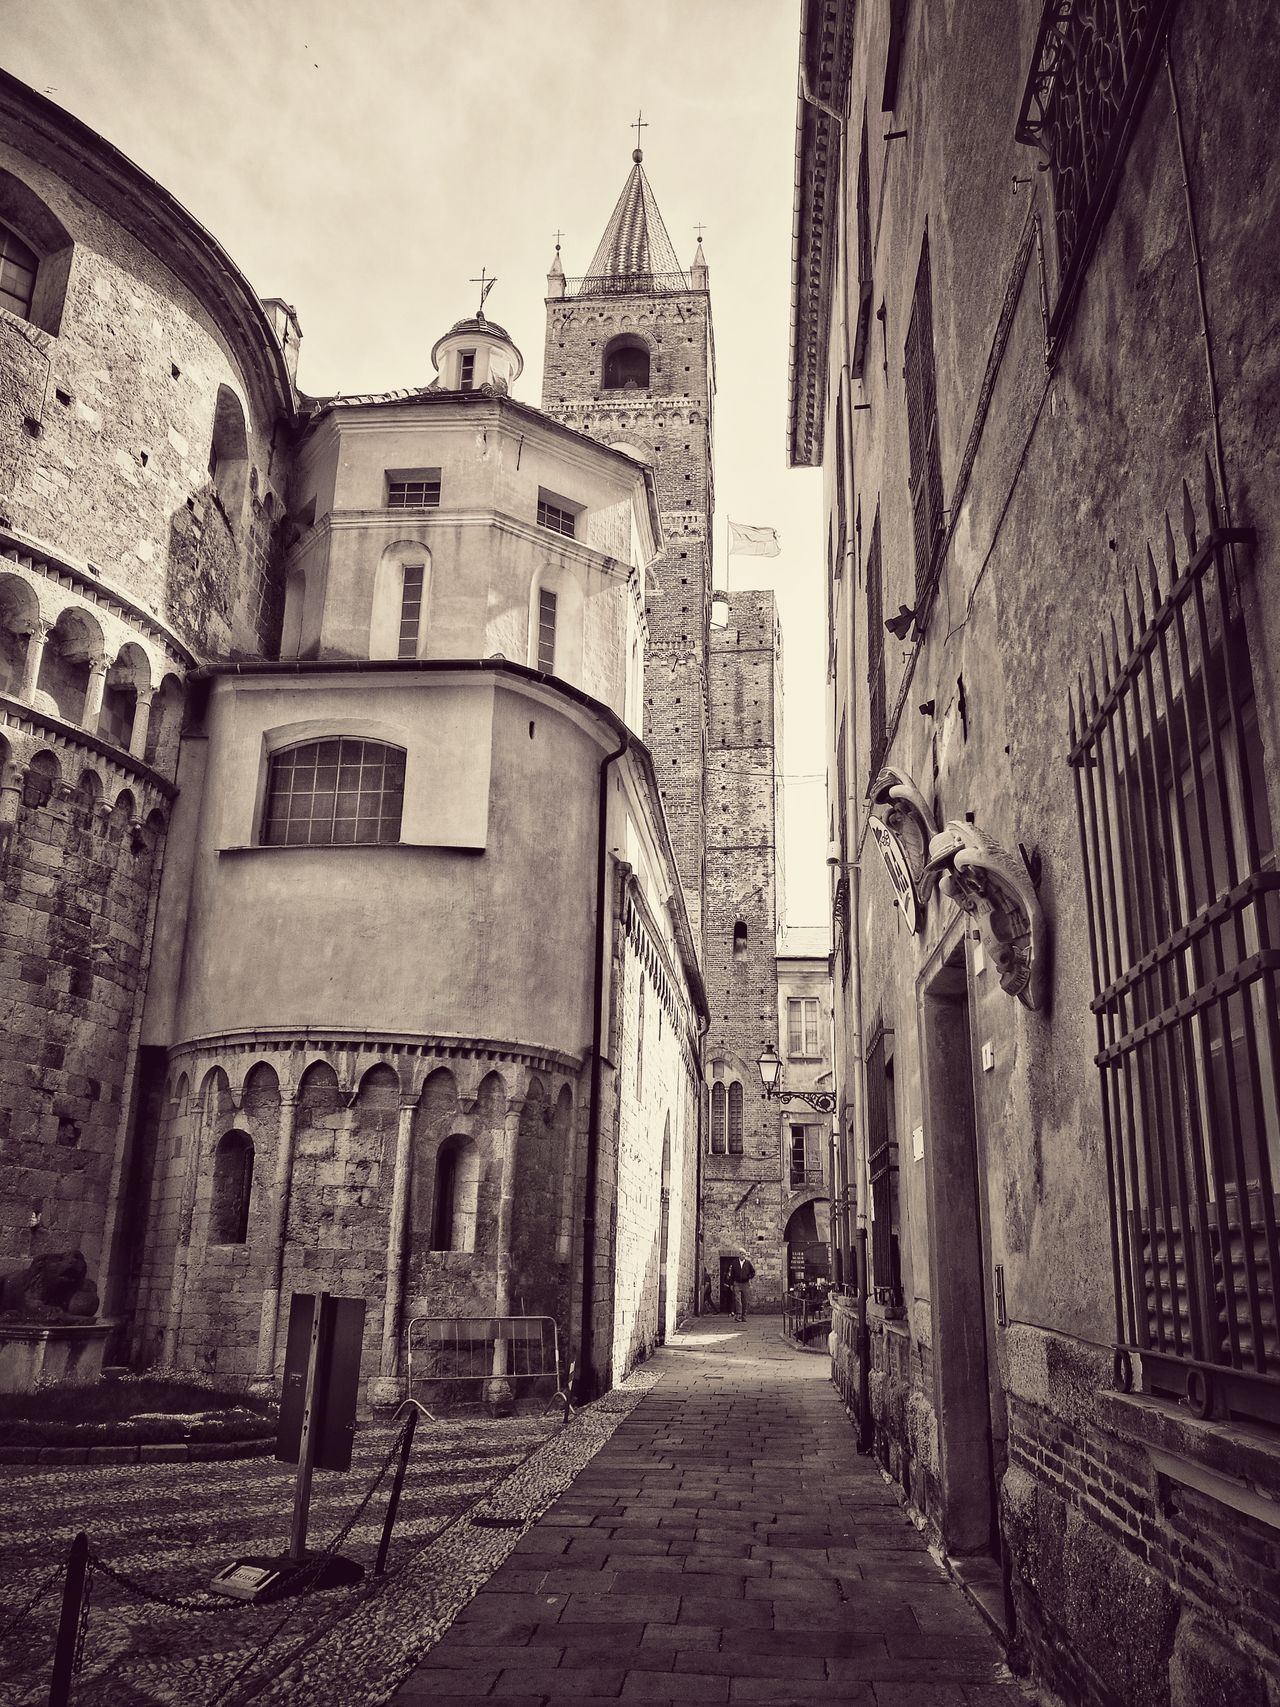 Architecture Built Structure Building Exterior Day City Old Buildings Old Ruin Oldtown Albenga Italy The Street Photographer - 2017 EyeEm Awards The Architect - 2017 EyeEm Awards